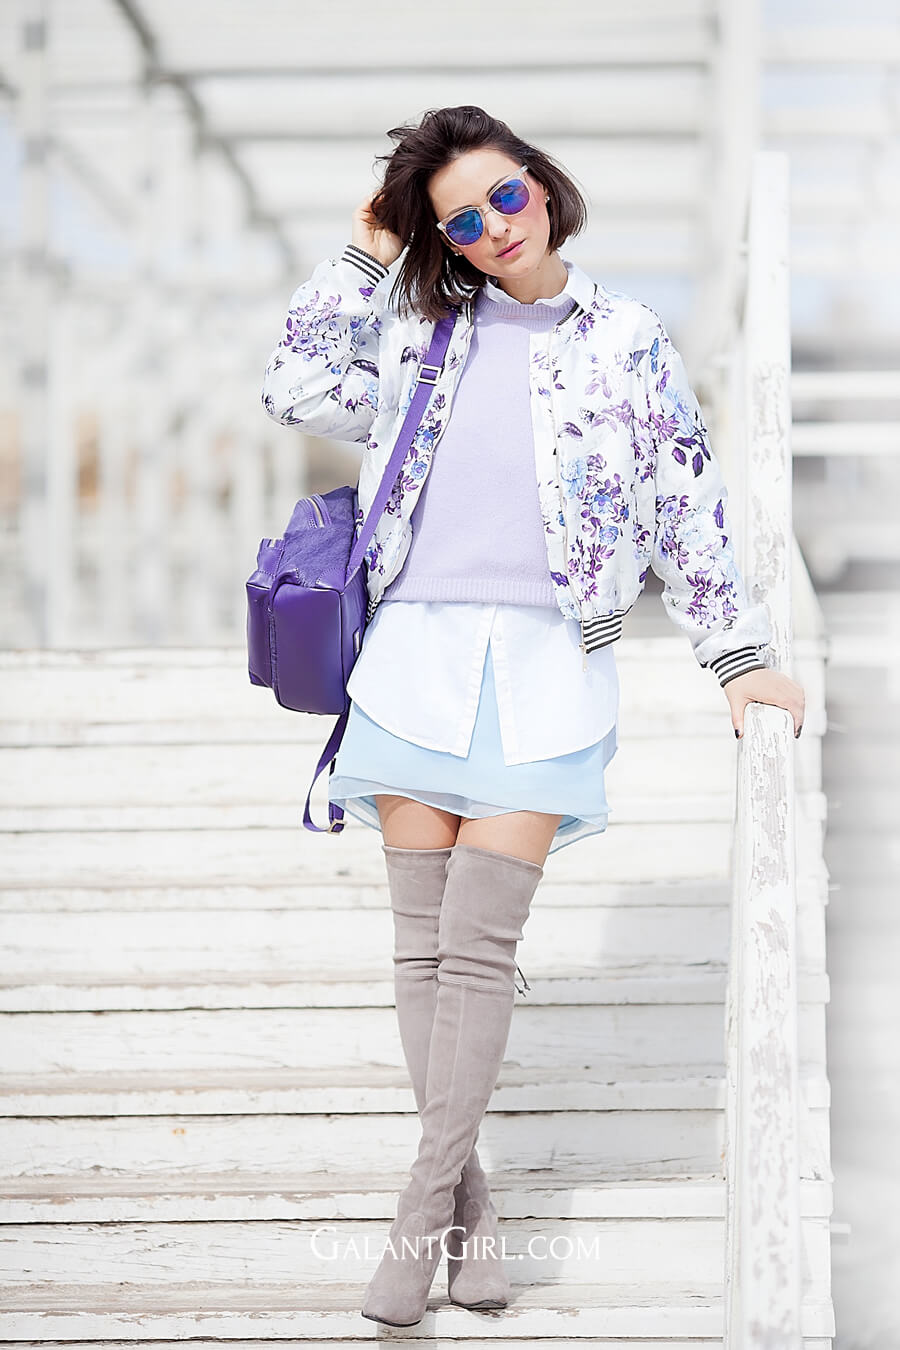 spring+outfit+ideas-floral+bomber+jacket-stuart+weitzman+otkboots+outfit